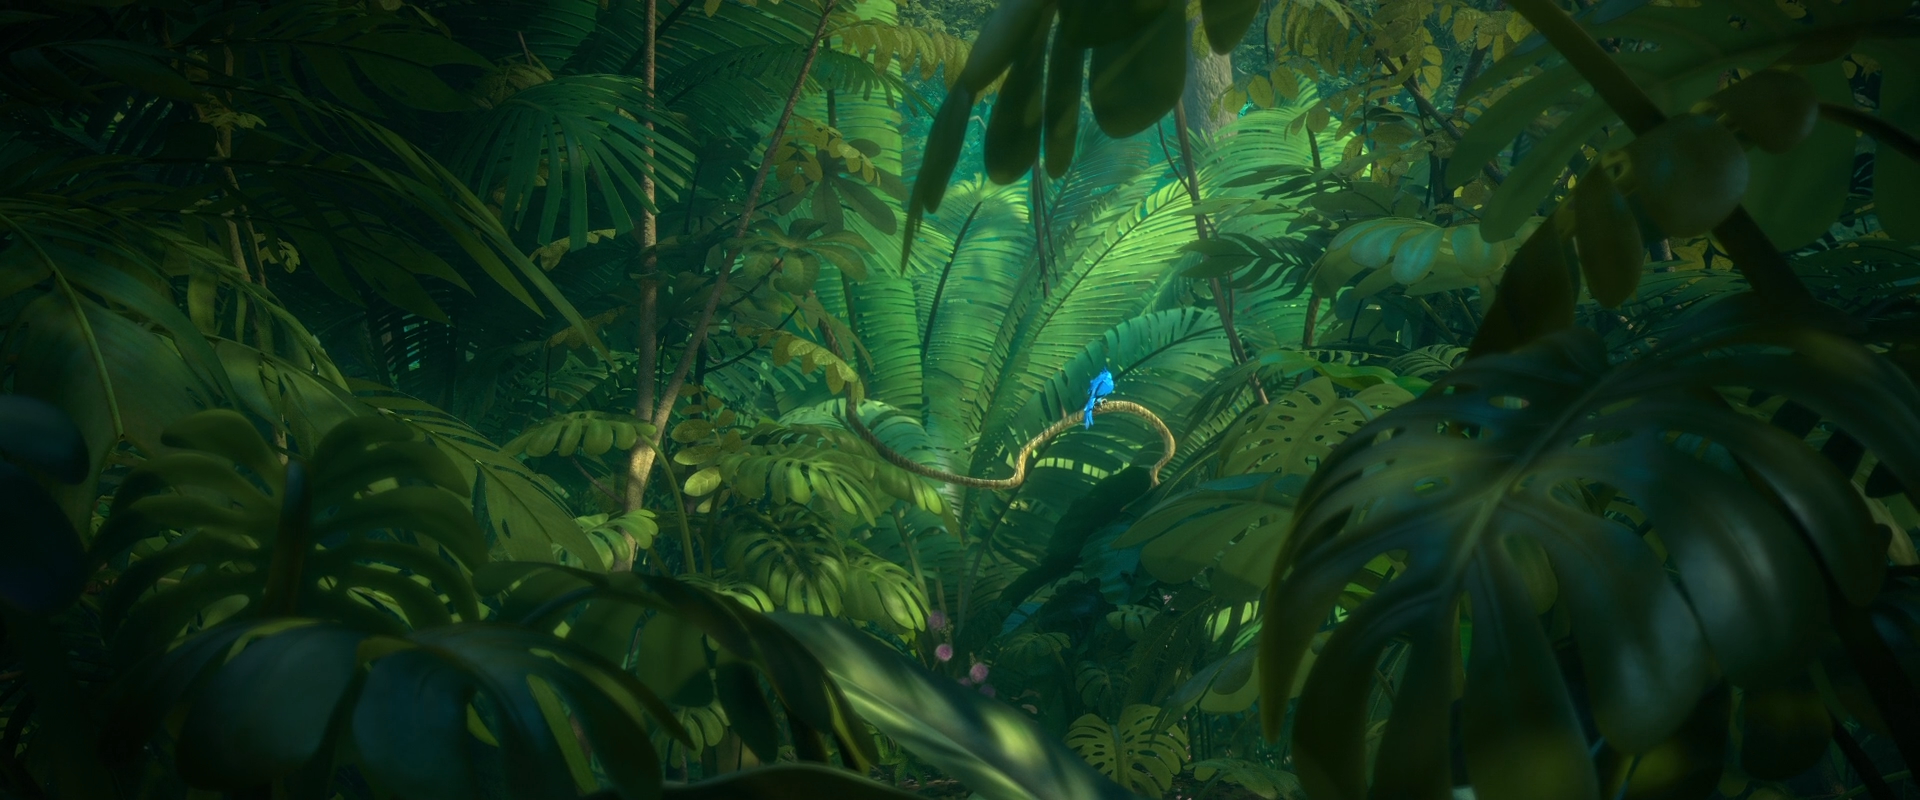 rio2_006.png